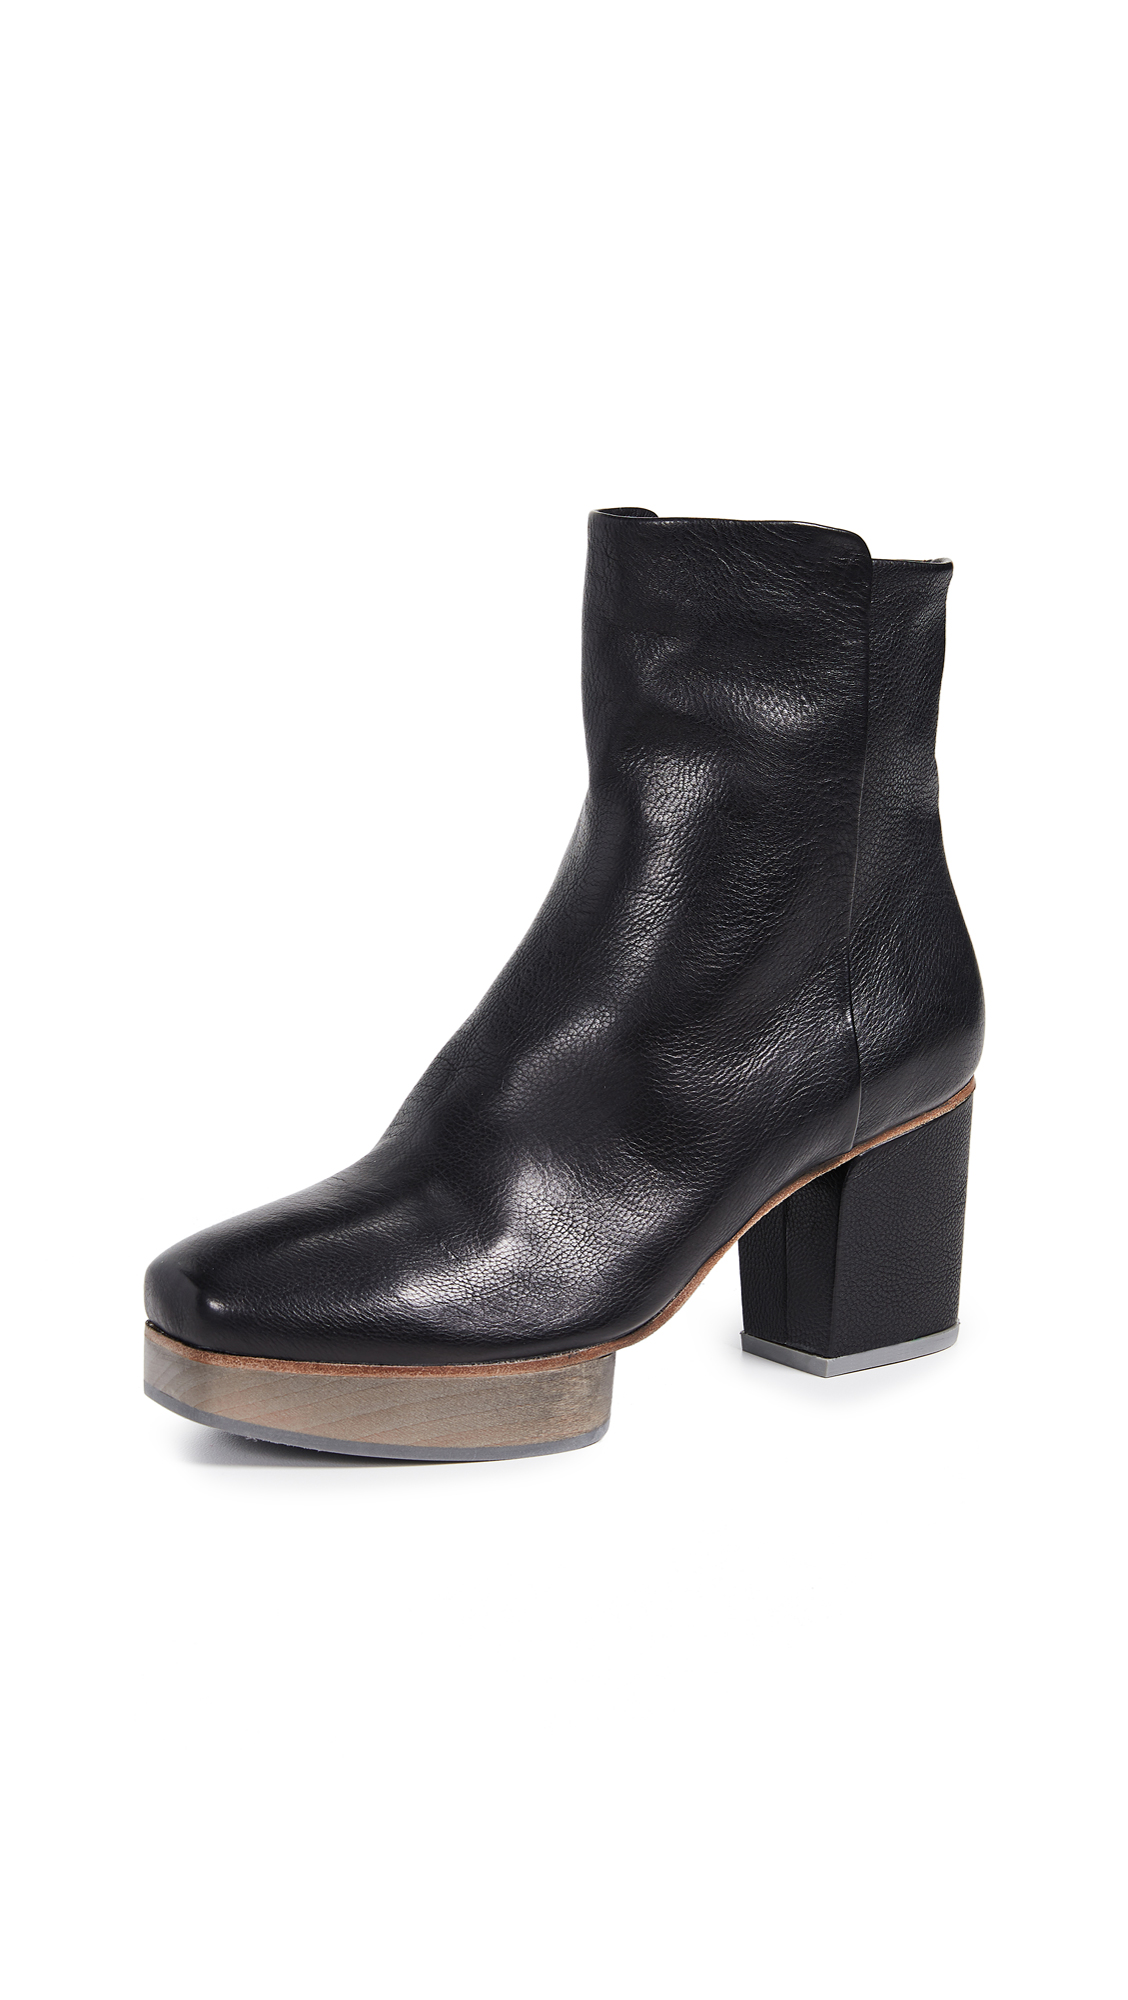 Coclico Shoes Rana Platform Booties - Black